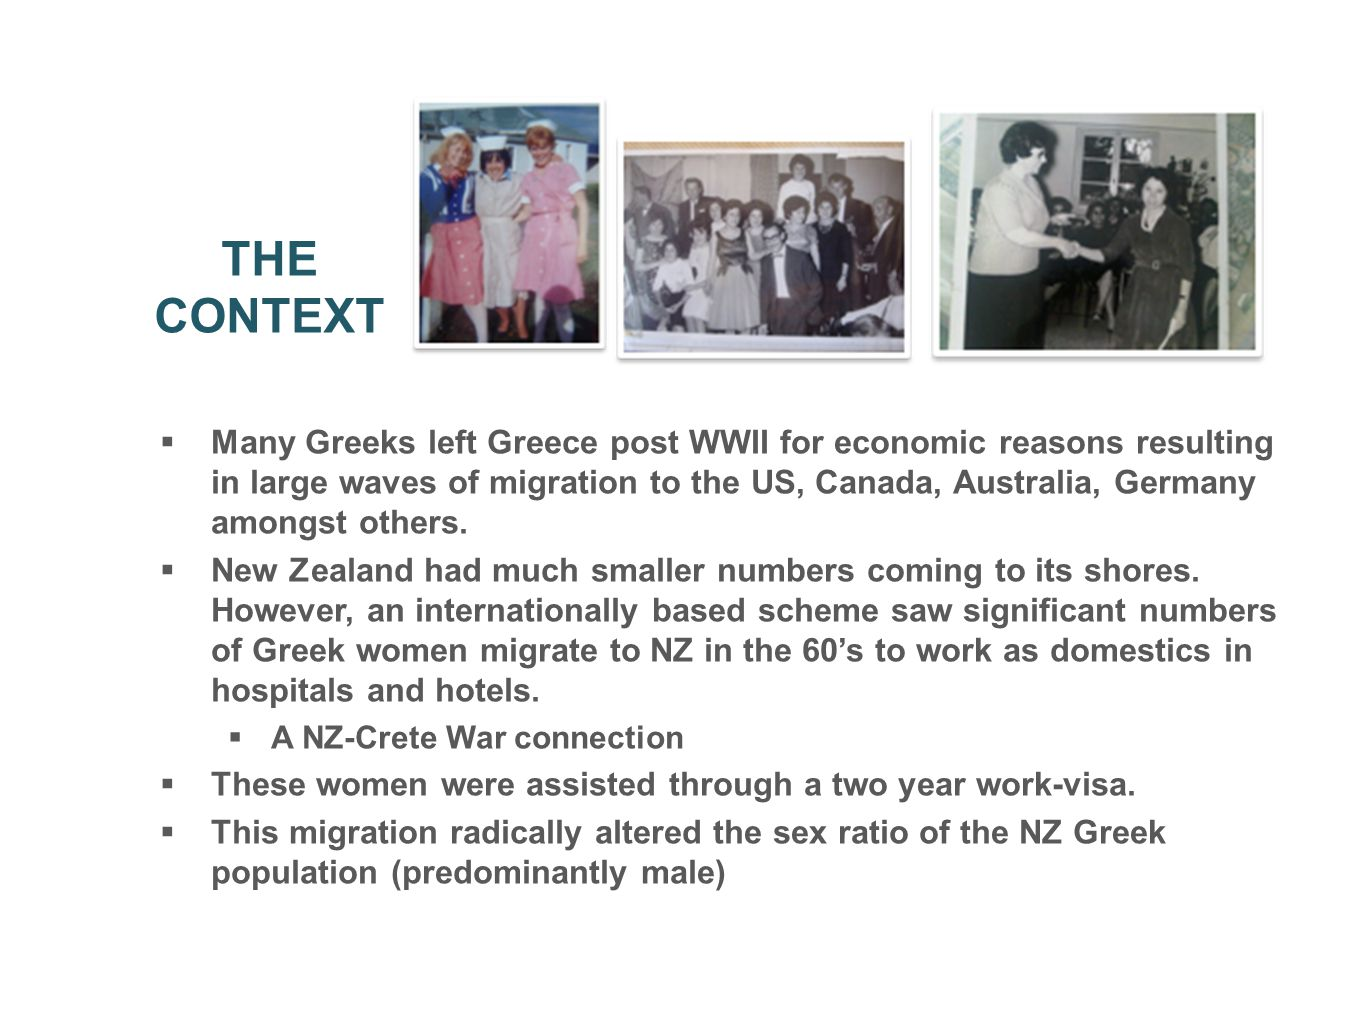  Many Greeks left Greece post WWII for economic reasons resulting in large waves of migration to the US, Canada, Australia, Germany amongst others.